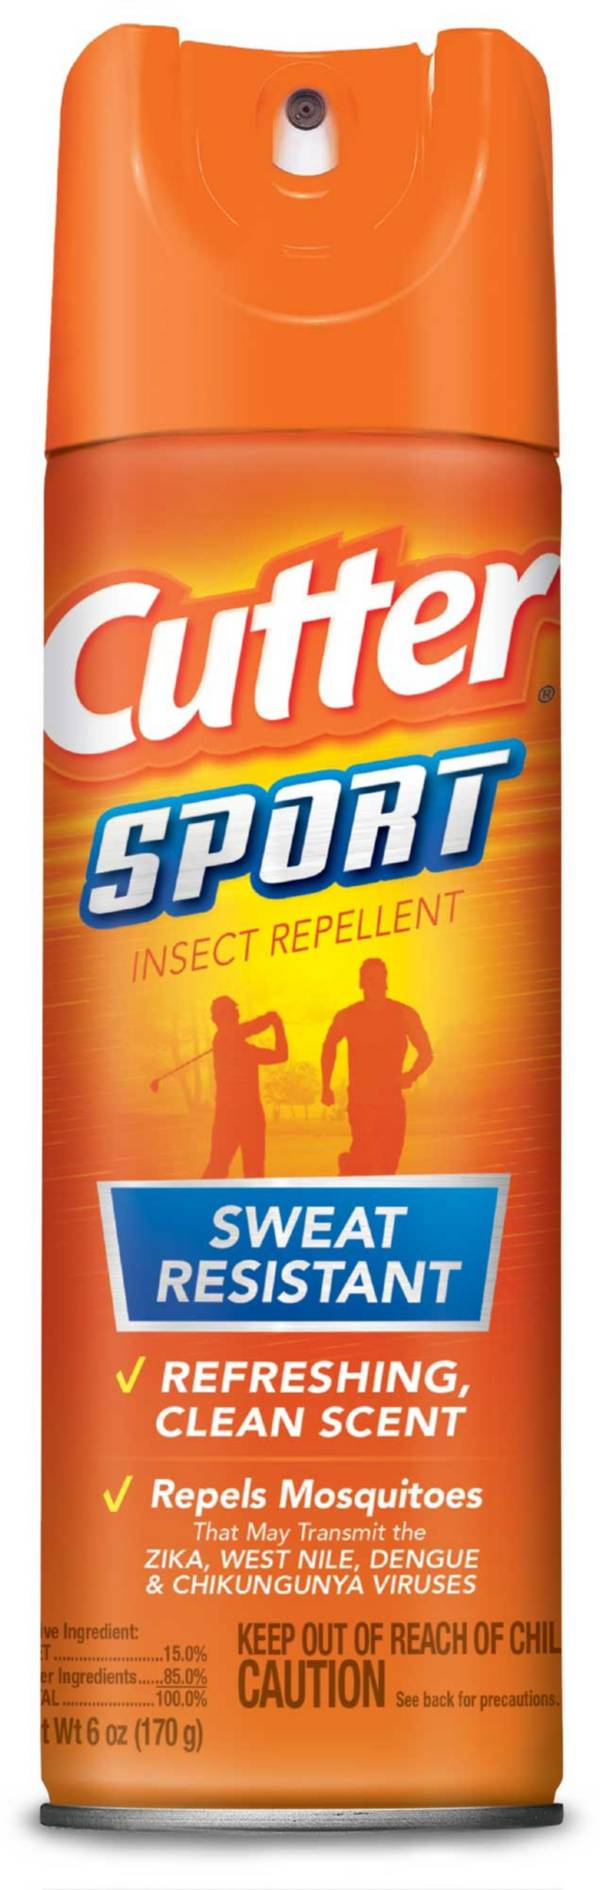 Cutter Sport Insect Repellent product image